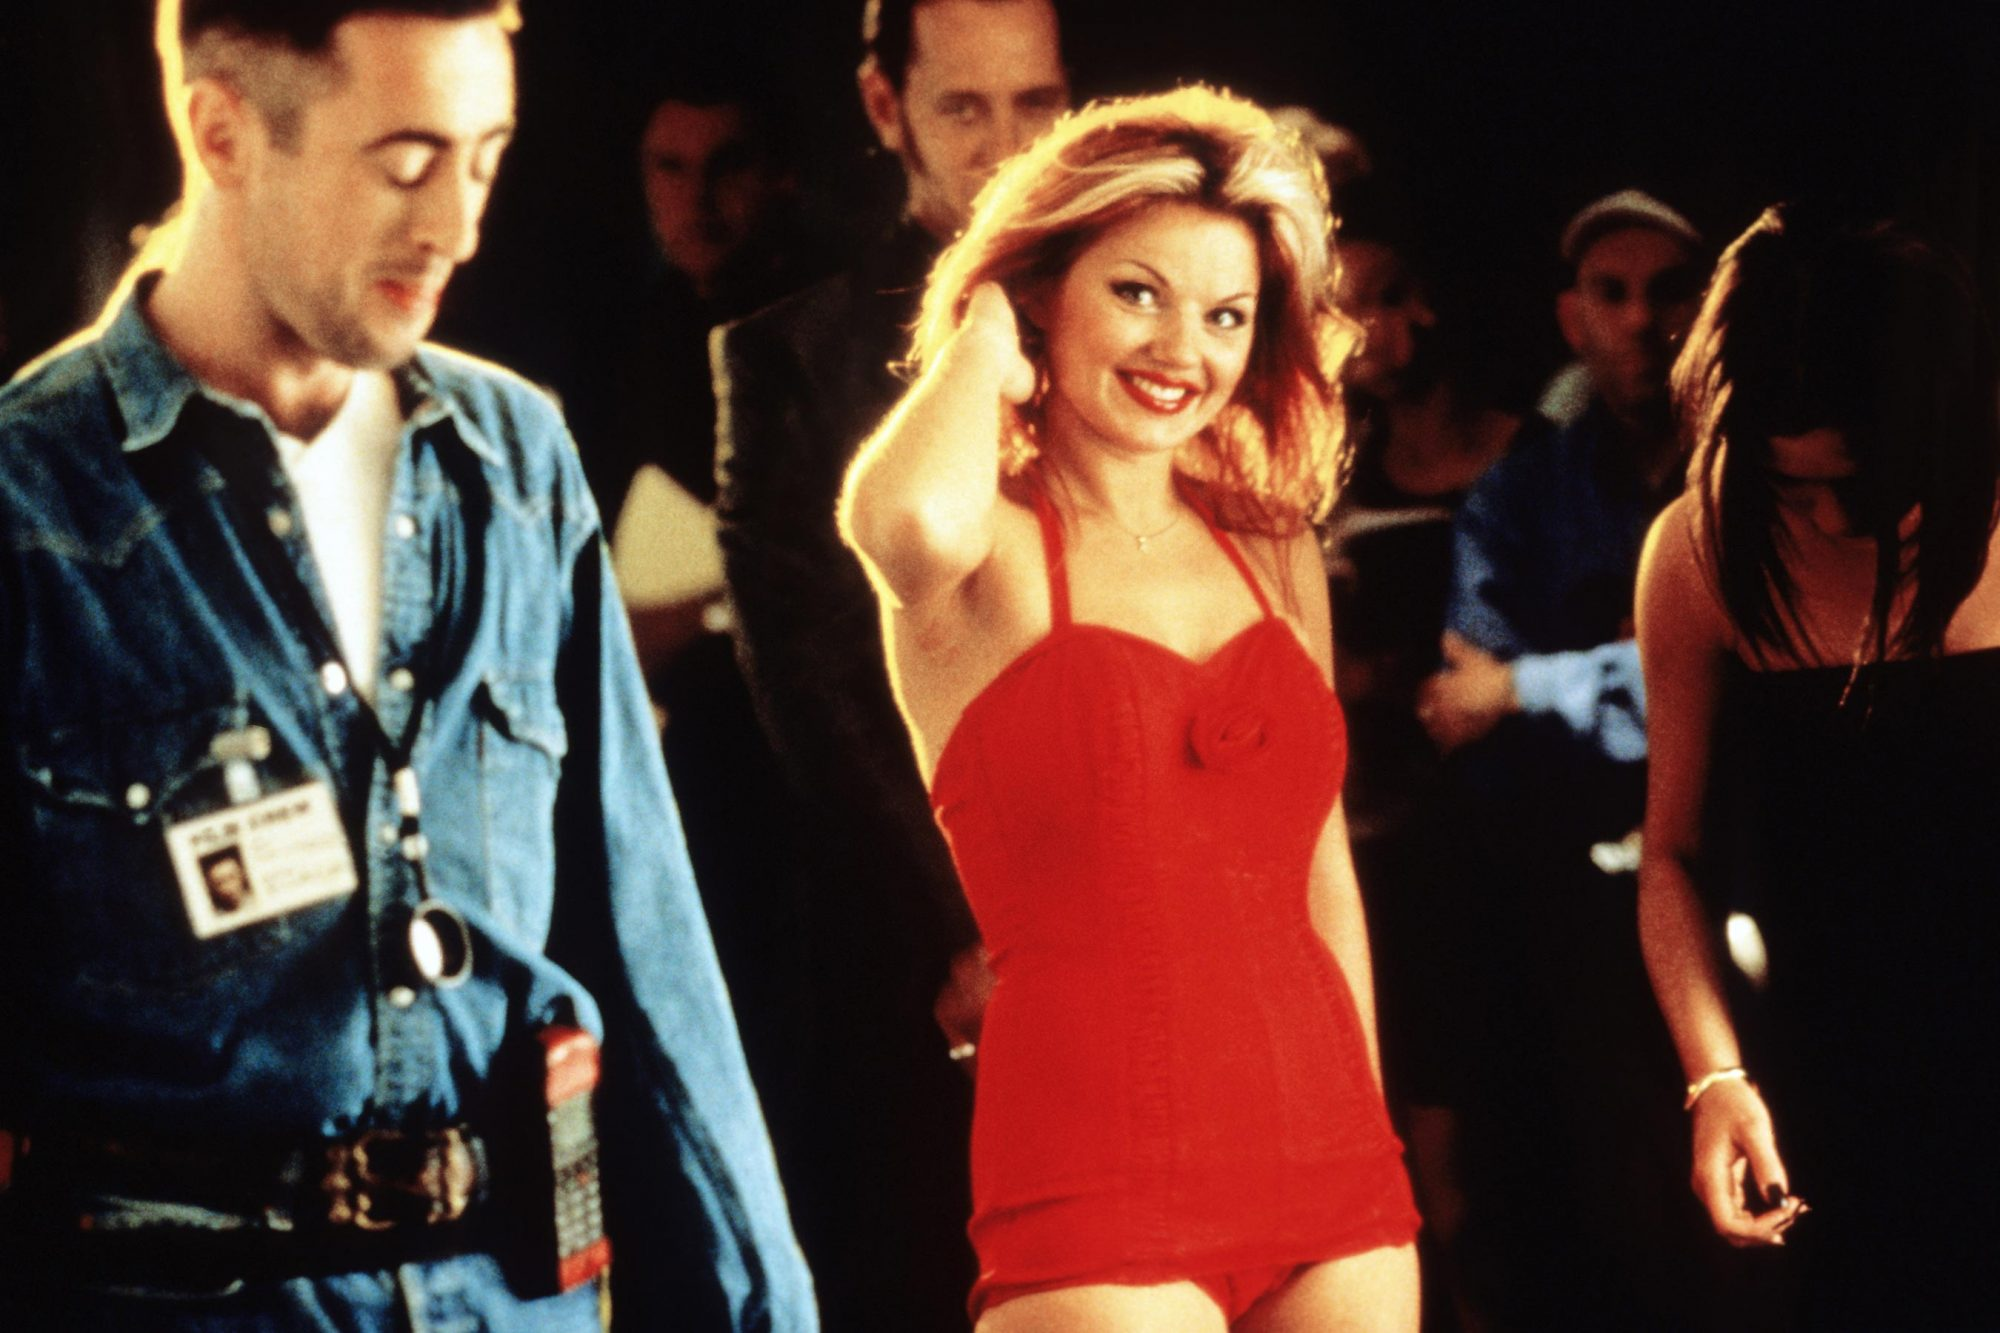 SPICE WORLD, from left: Alan Cumming, Geri Halliwell, 1997, © Columbia/courtesy Everett Collection